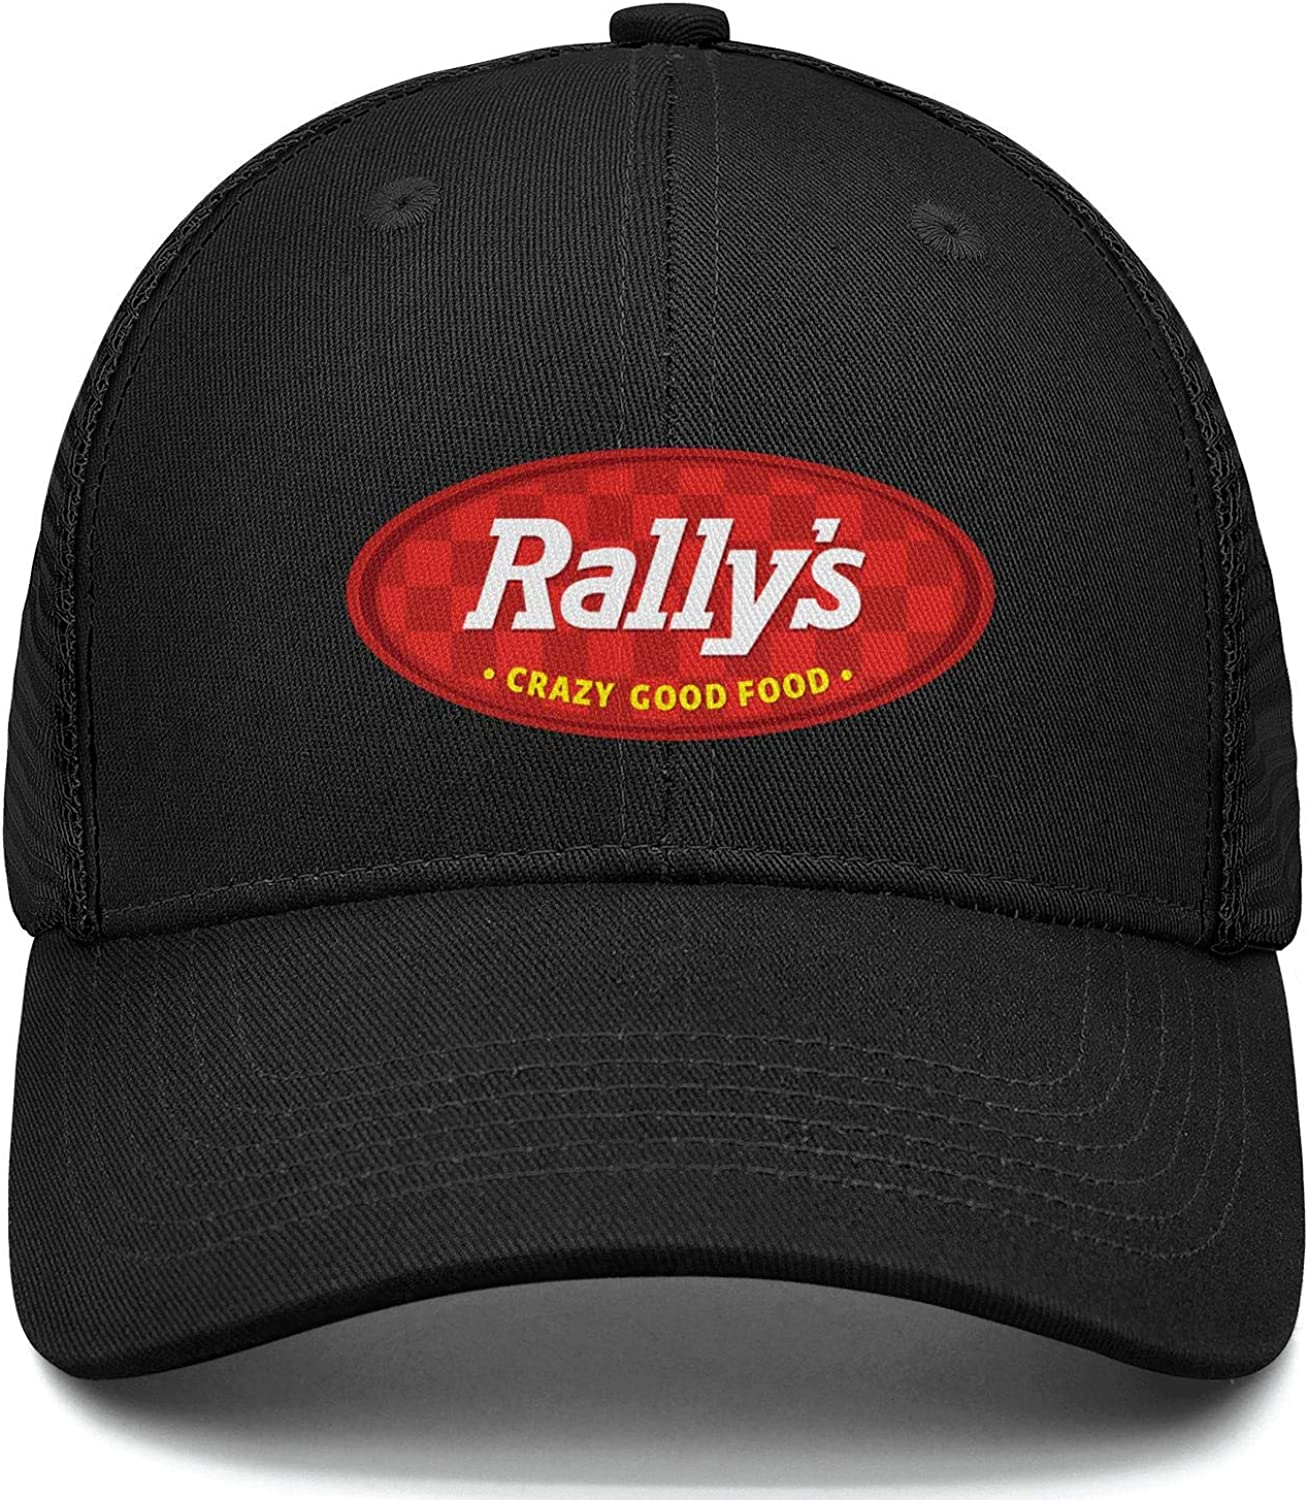 WintyHC Checkers and Rallys Logo Cowboy Hat Dad Hat One Size Skull Cap